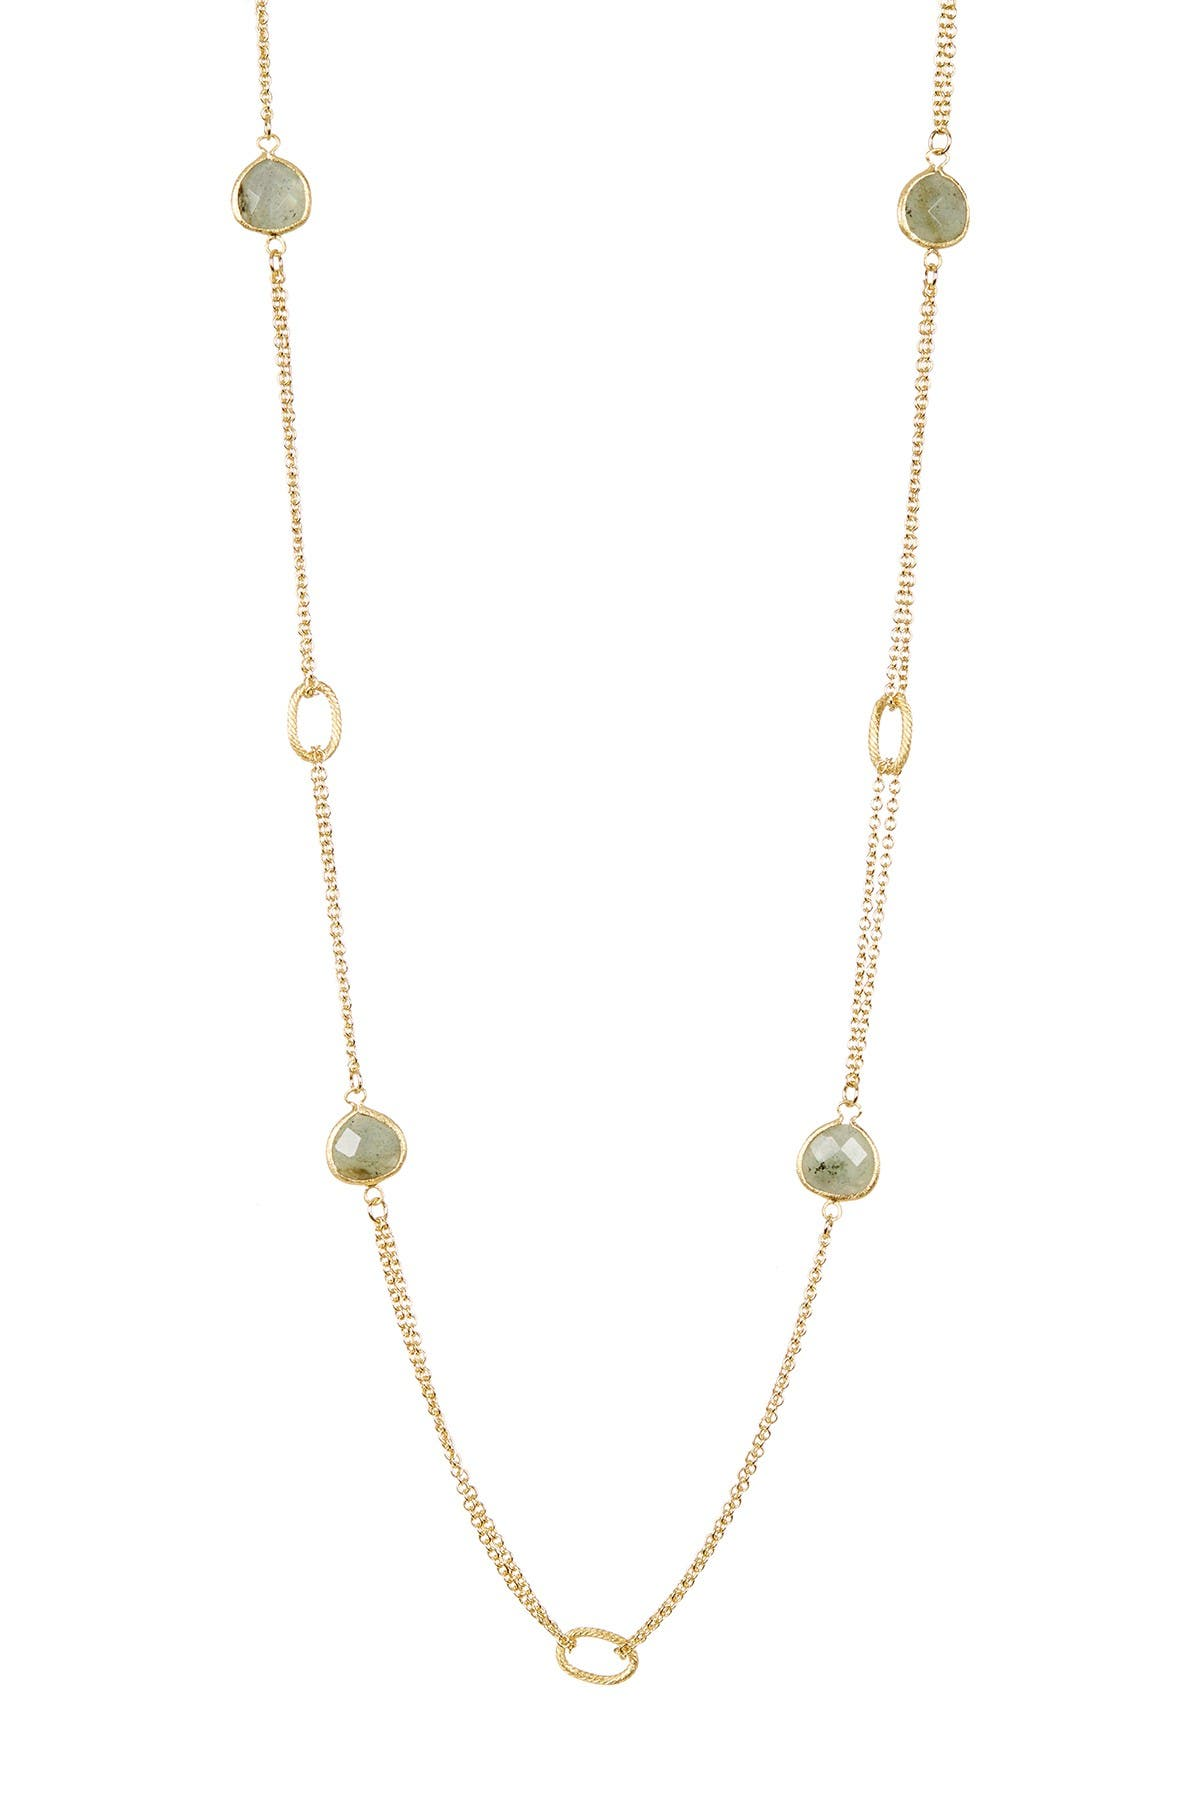 Image of Rivka Friedman 18K Gold Clad Double Row Labradorite Cable Link Necklace